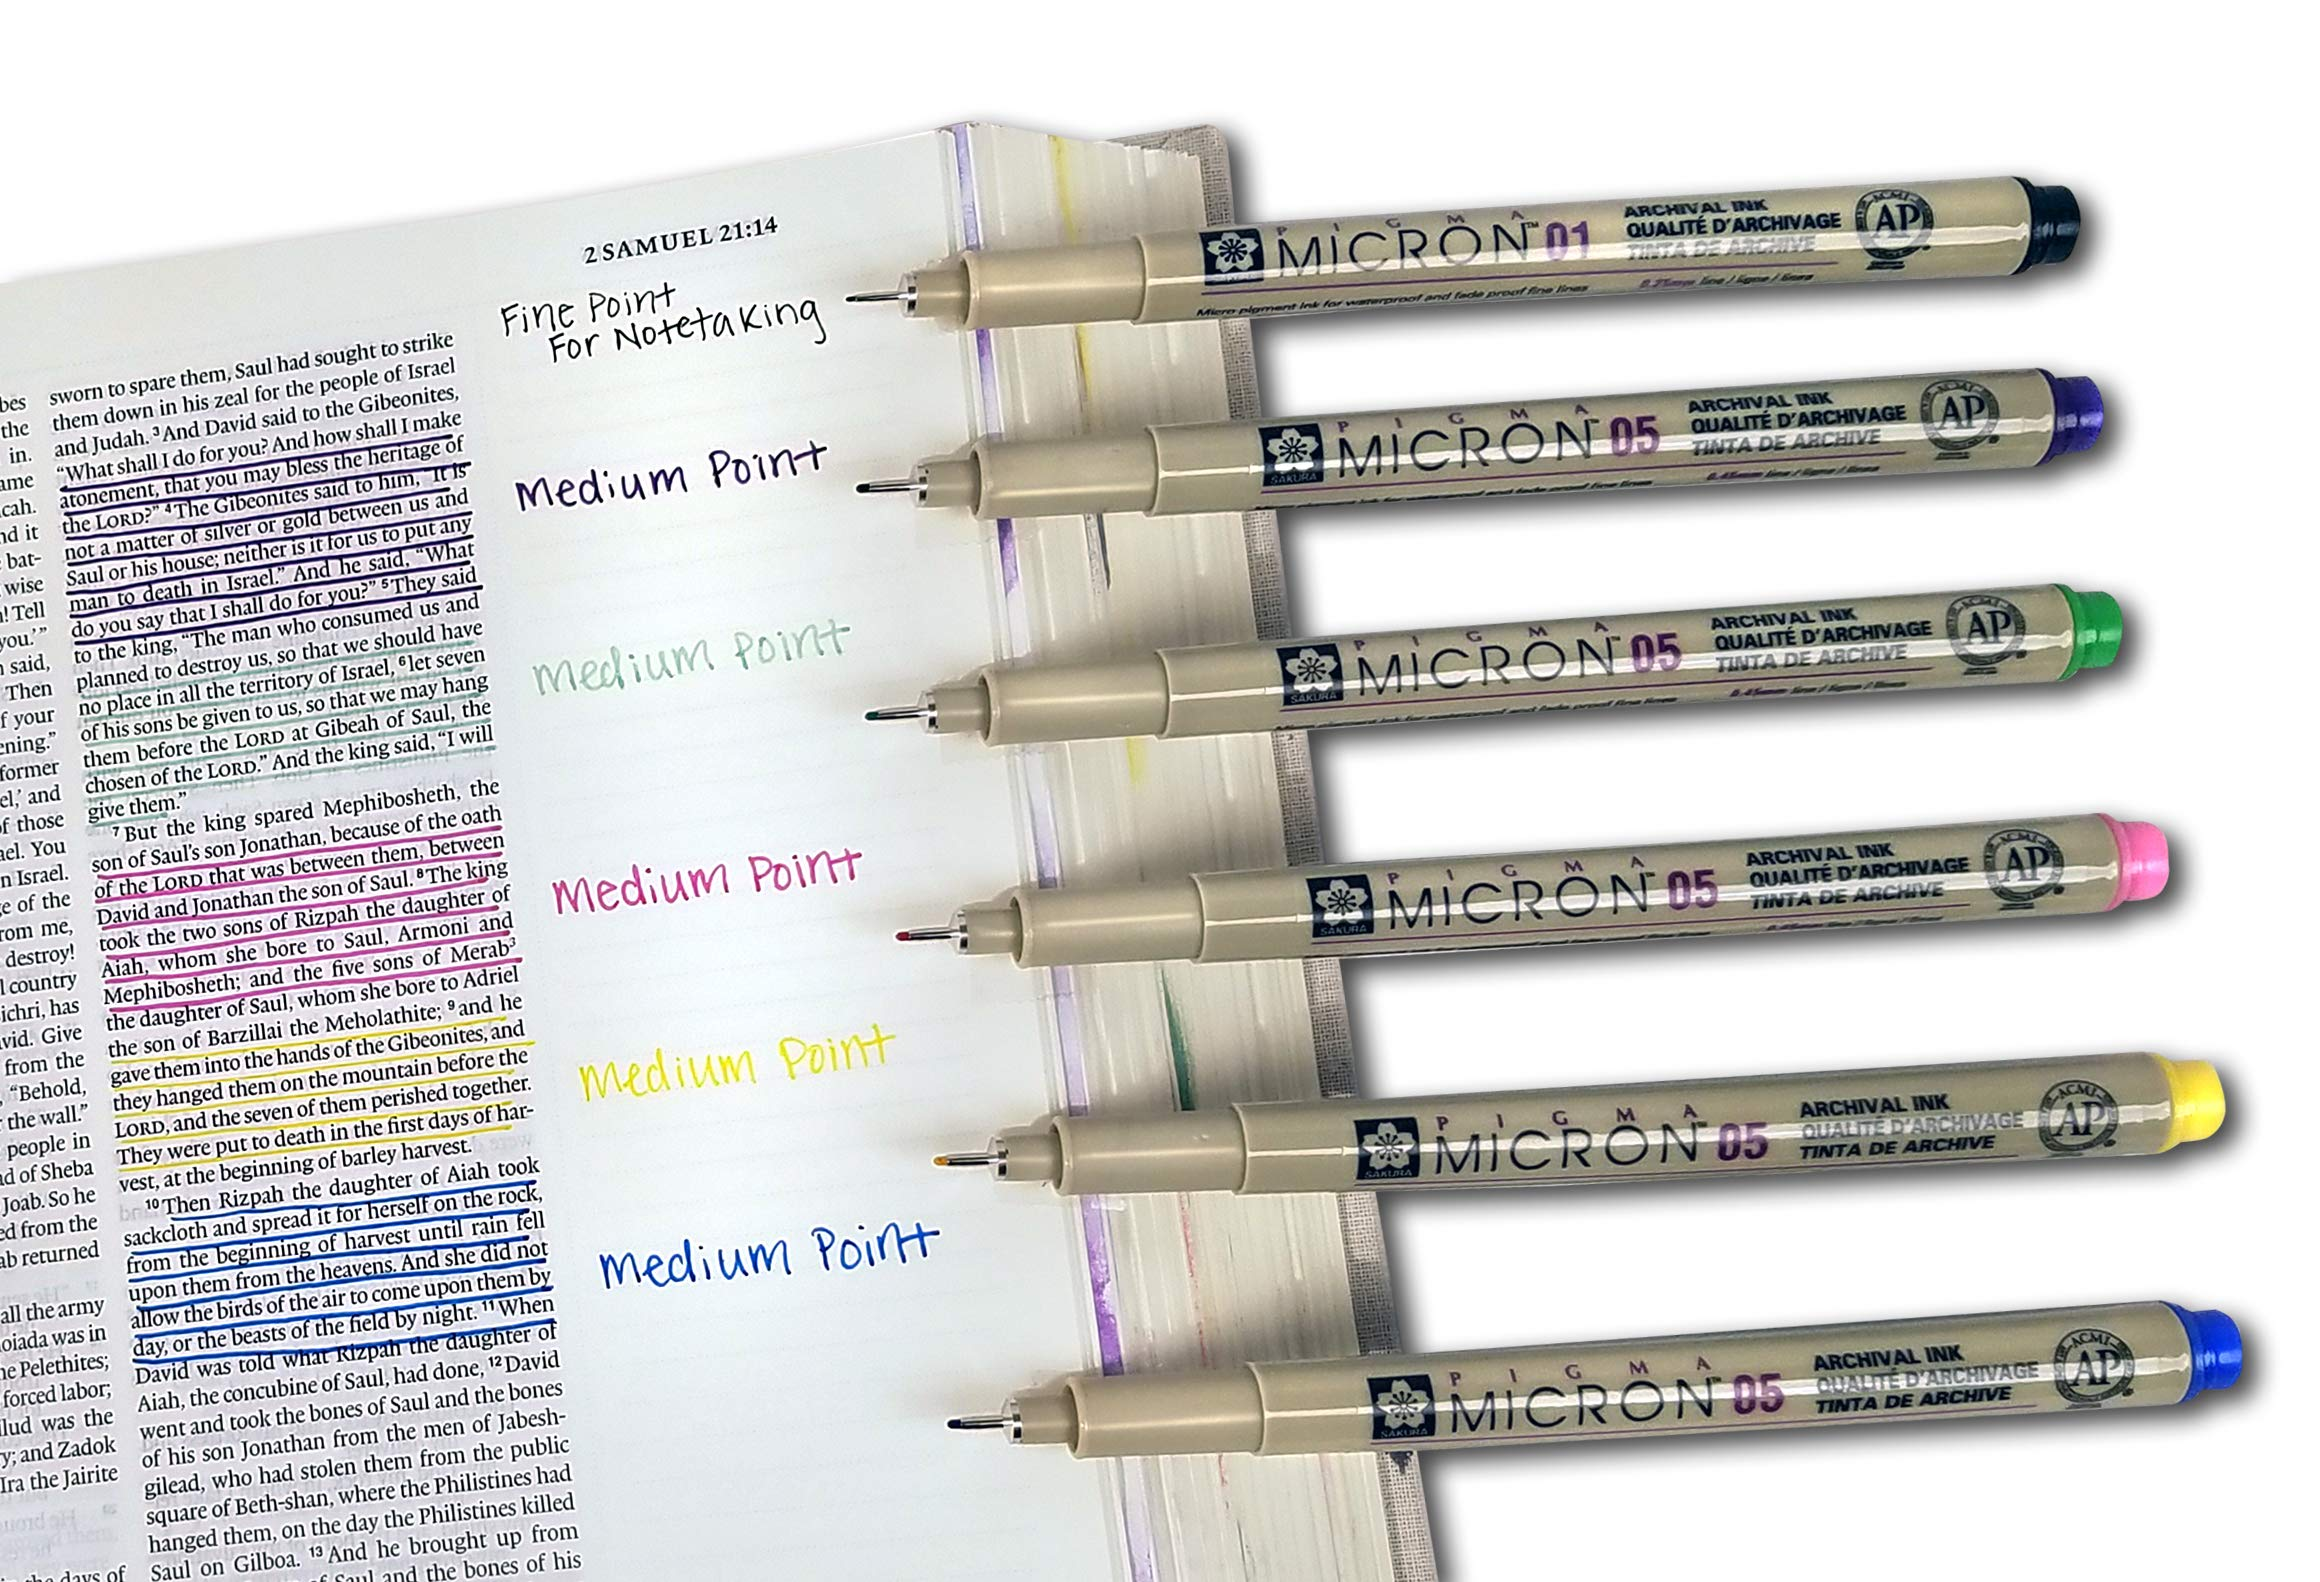 Accu-Gel Bible Highlighter Study Kit (Pack of 6) + Pigma Micron 01 Fine & 05 Medium Point Bible Study Kit (Set of 6) - The Deluxe Multi-Color Study Kit by G.T. Luscombe Company, Inc. (Image #4)